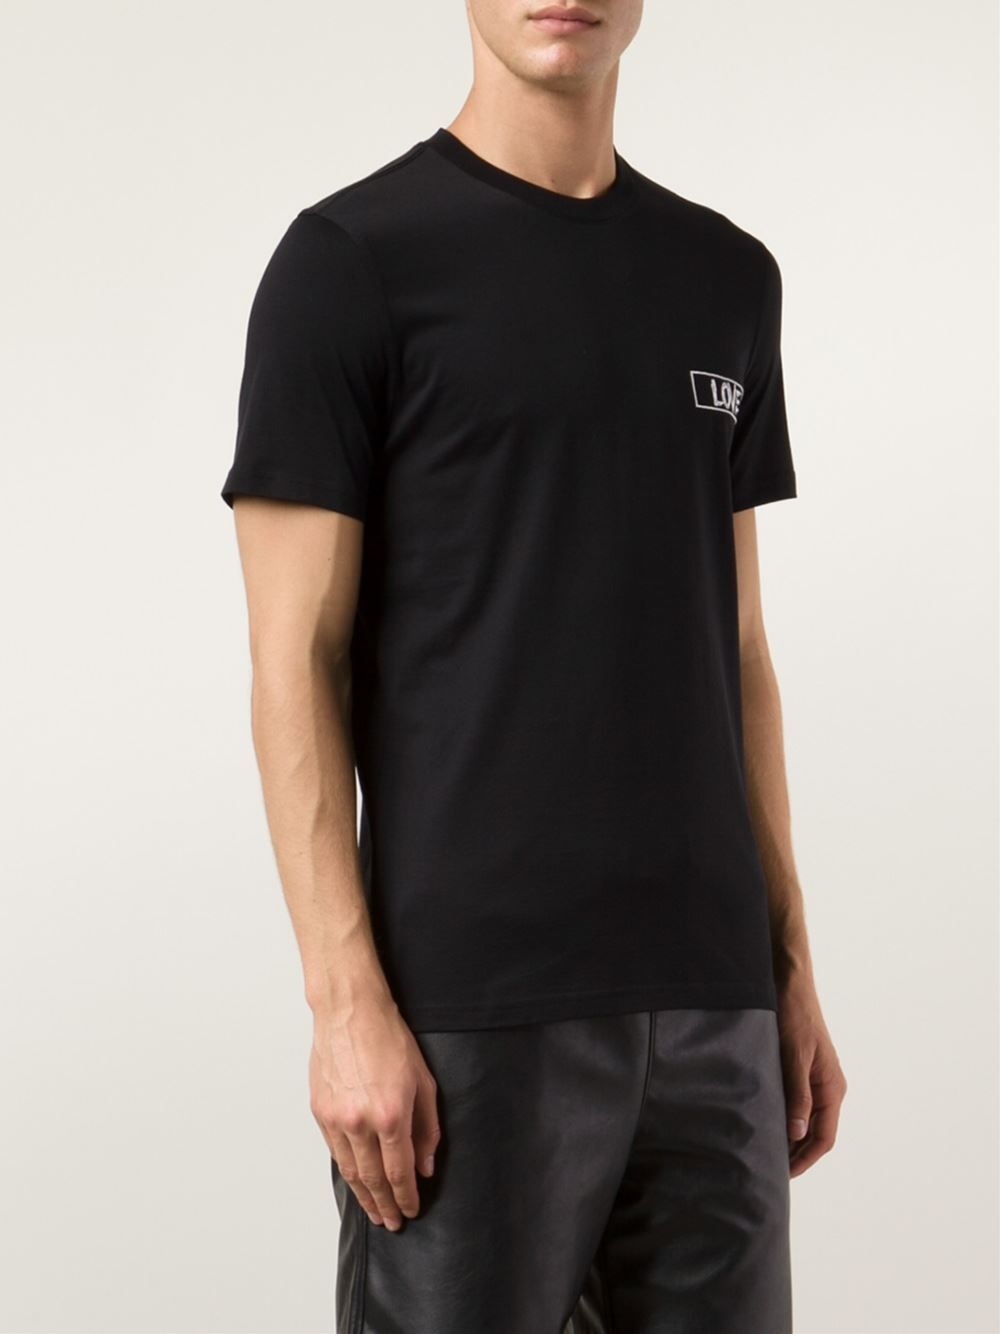 givenchy love embroidered t shirt in black for men lyst. Black Bedroom Furniture Sets. Home Design Ideas